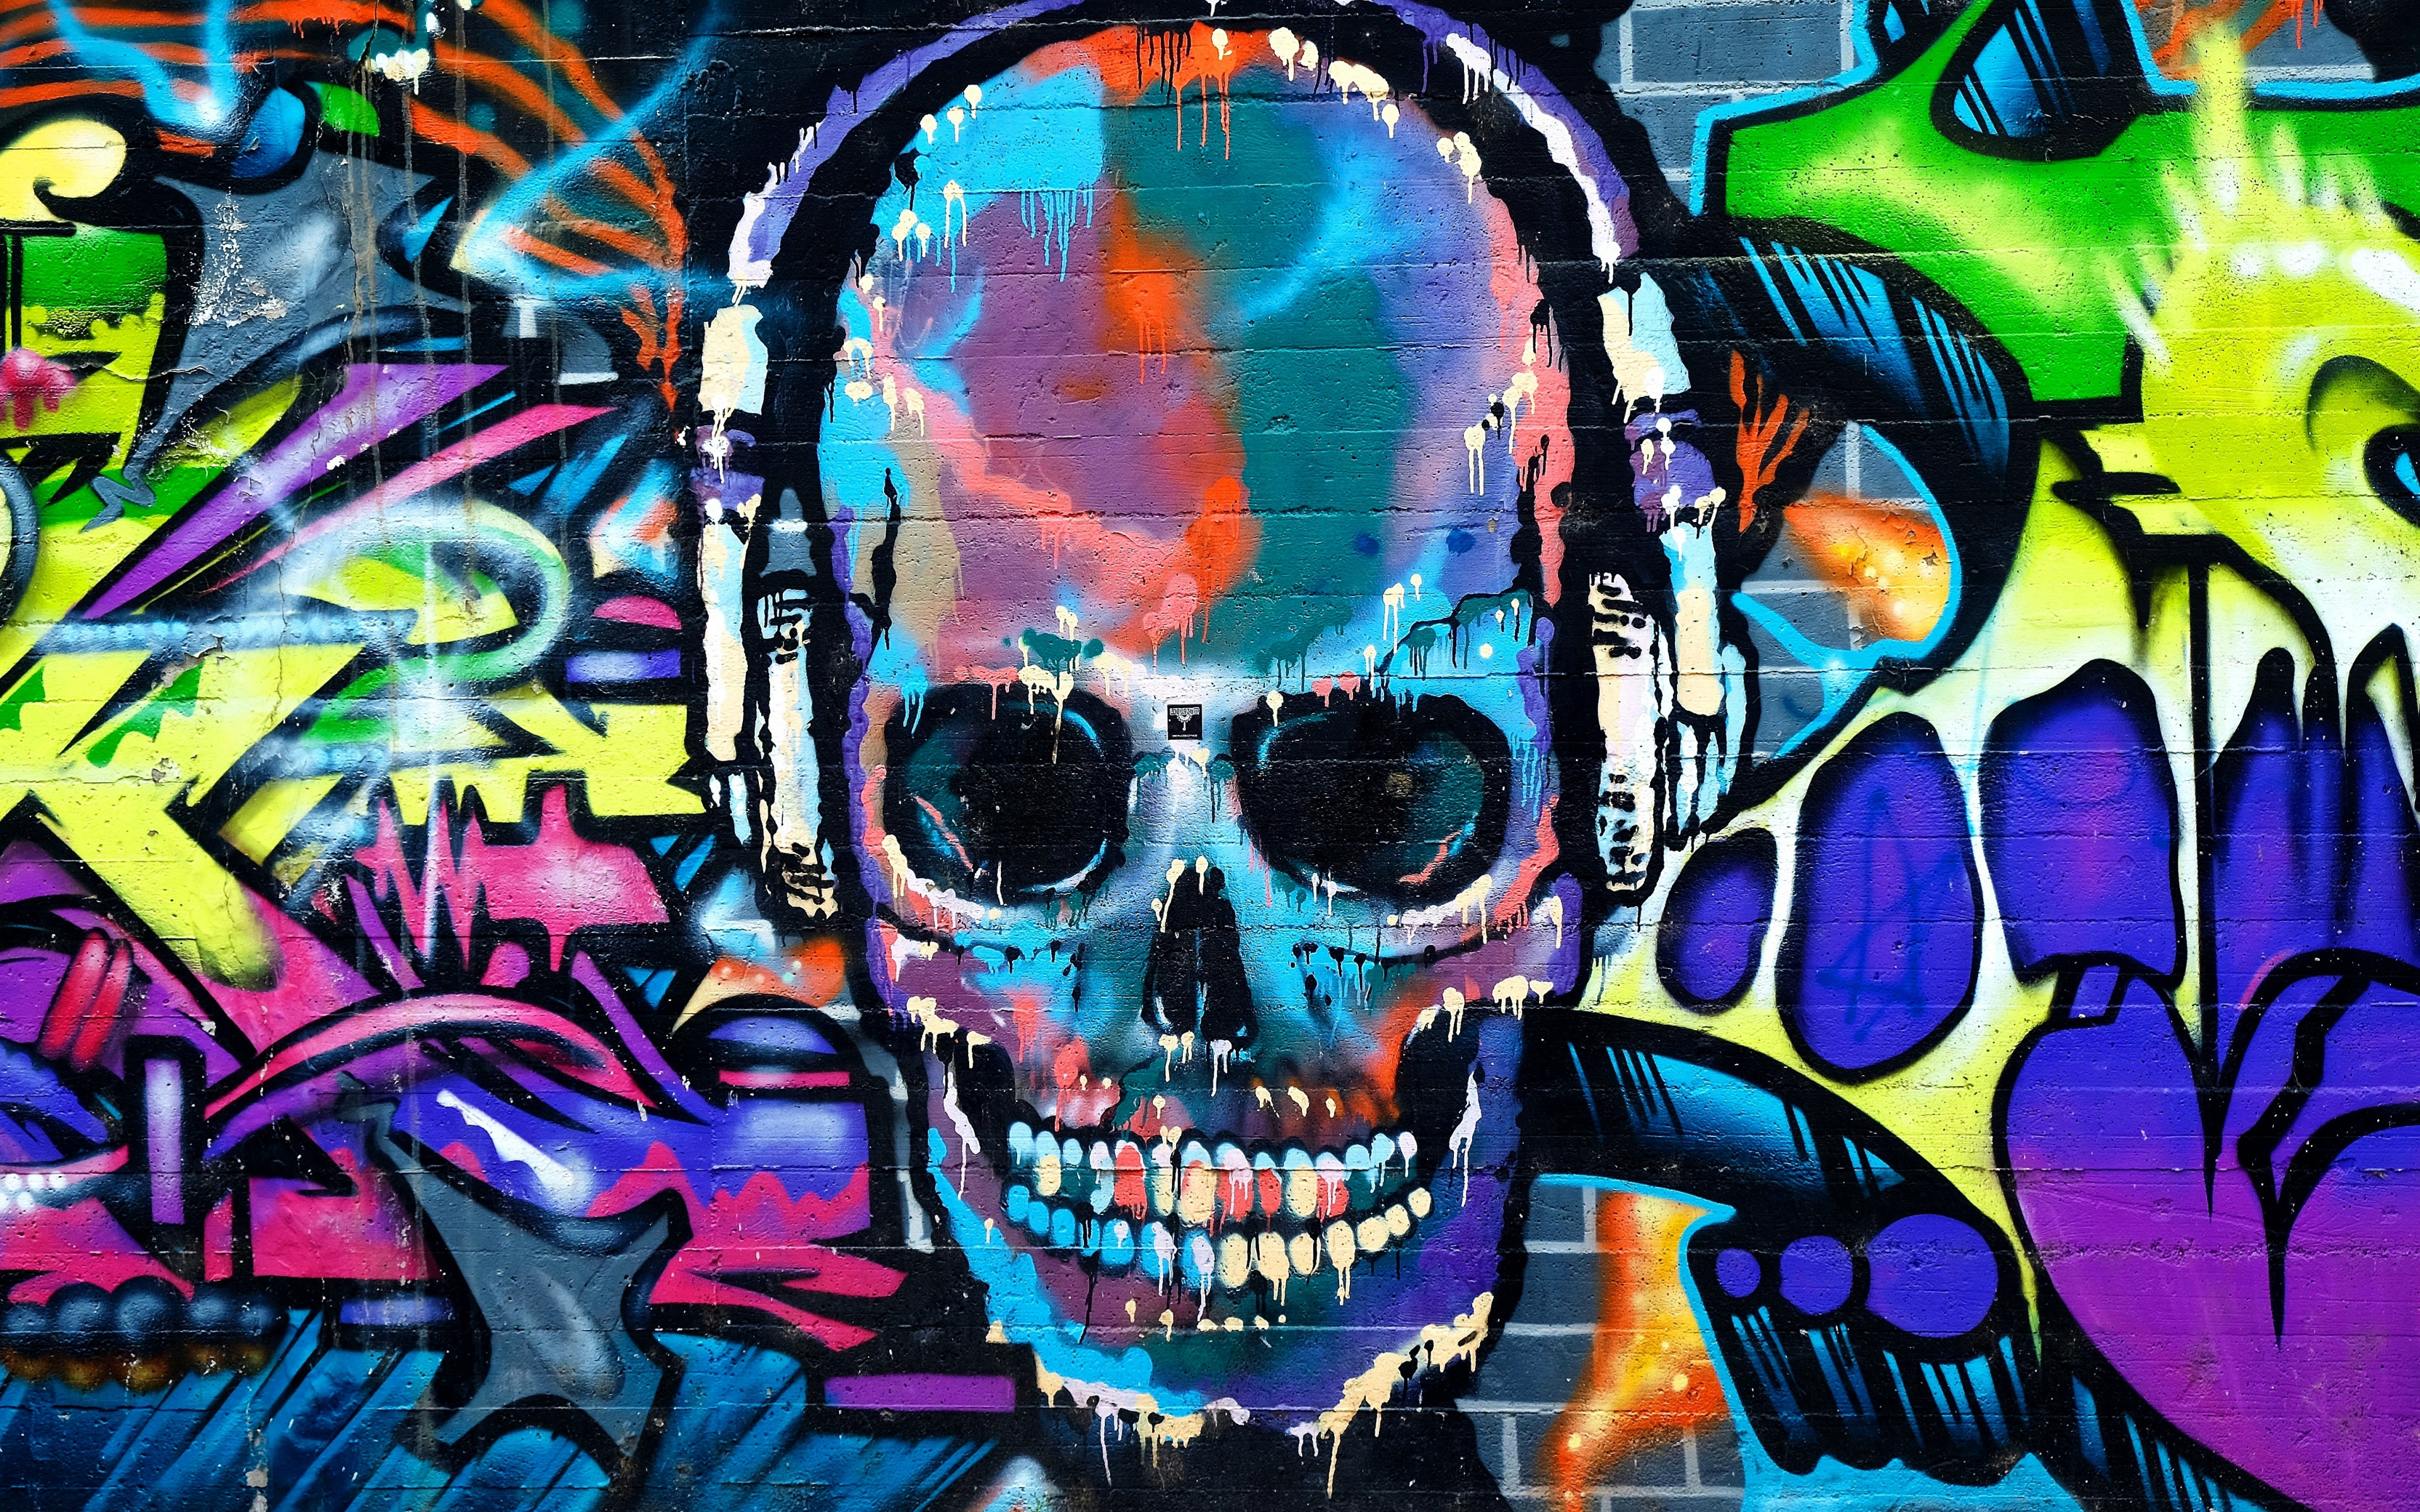 Abstract Graffiti Wallpapers on